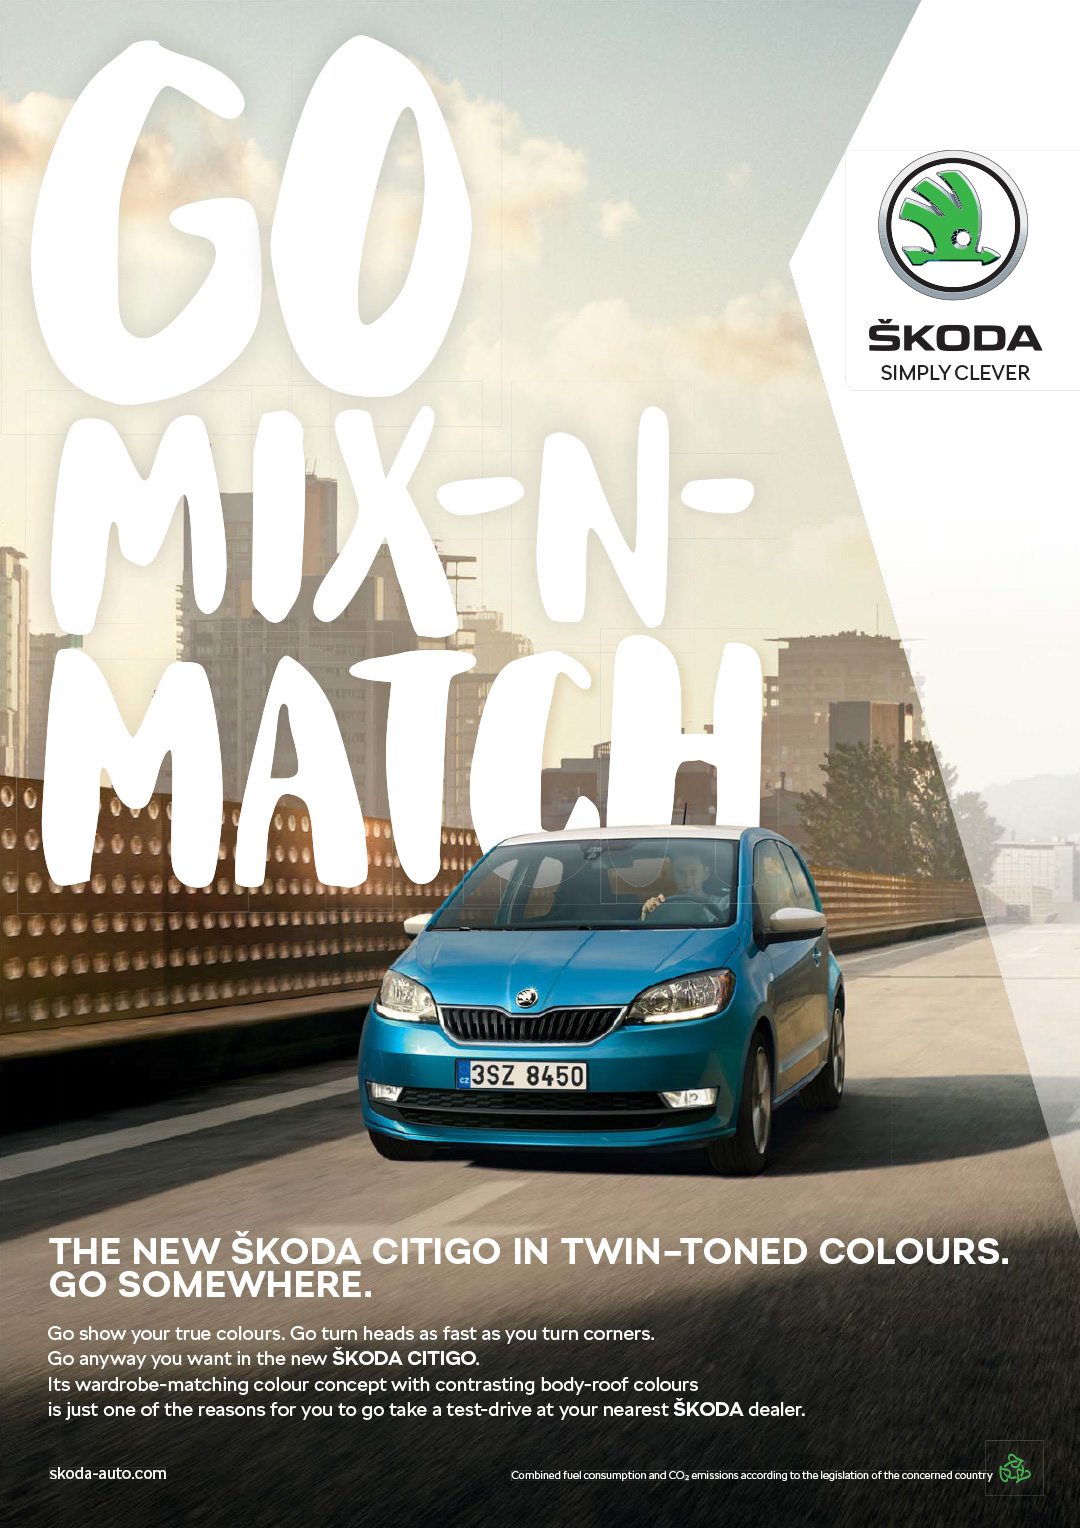 Mix Brush on Škoda Citigo advertising by Fallon Prague